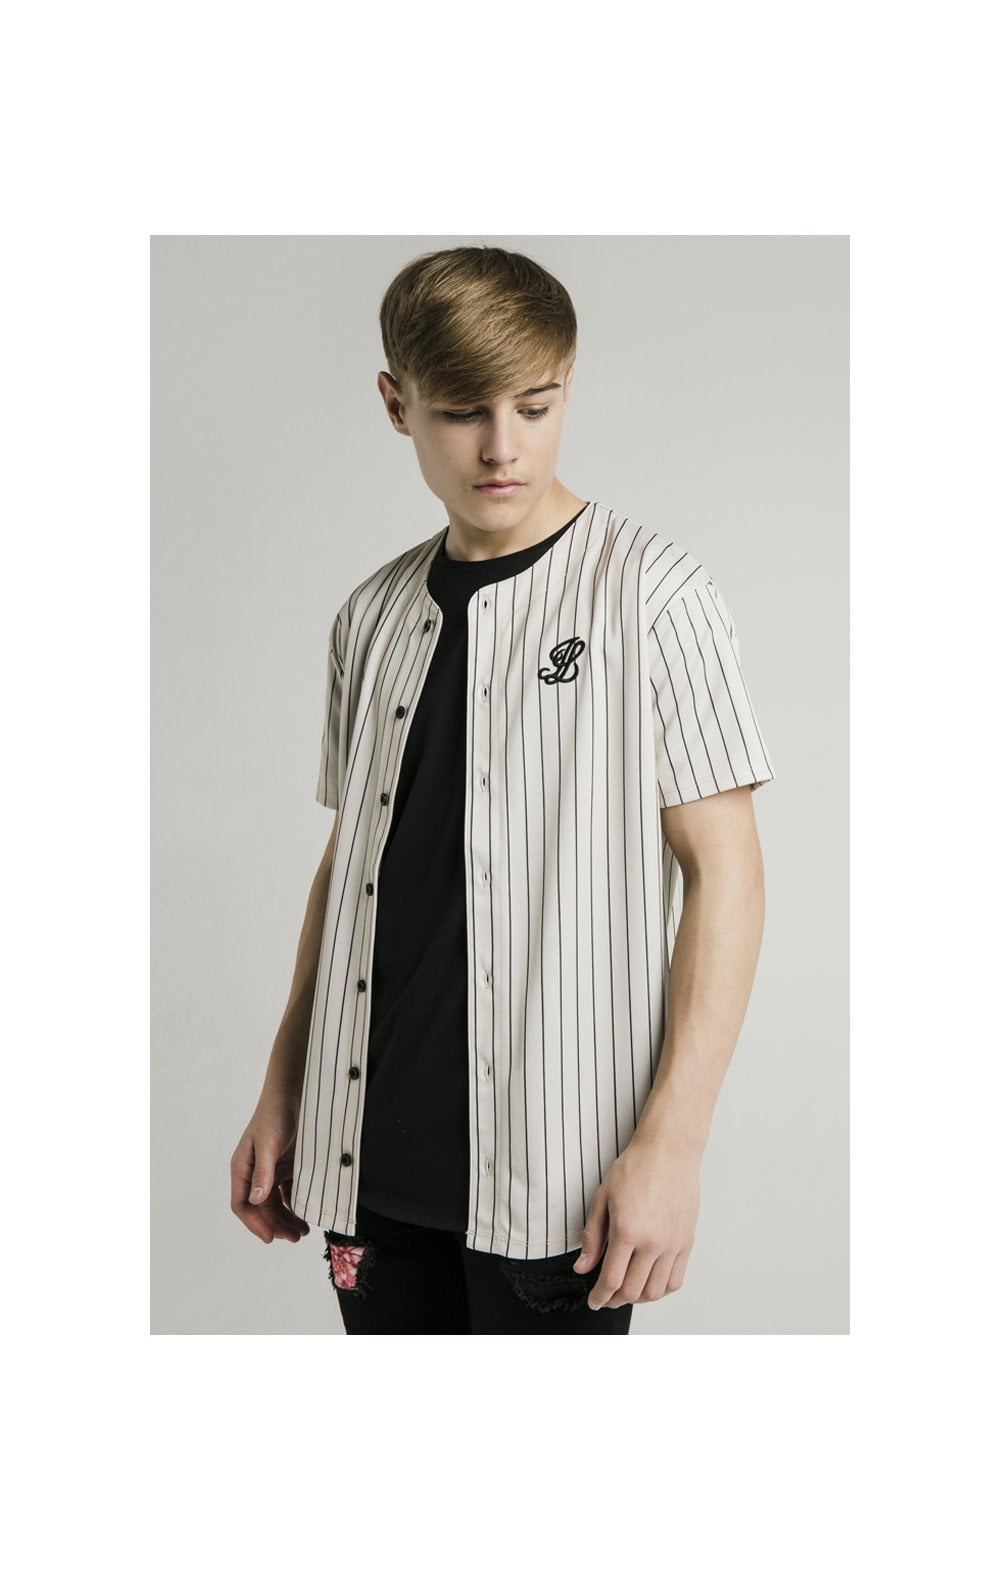 Load image into Gallery viewer, Illusive London Baseball Jersey - Ecru (1)